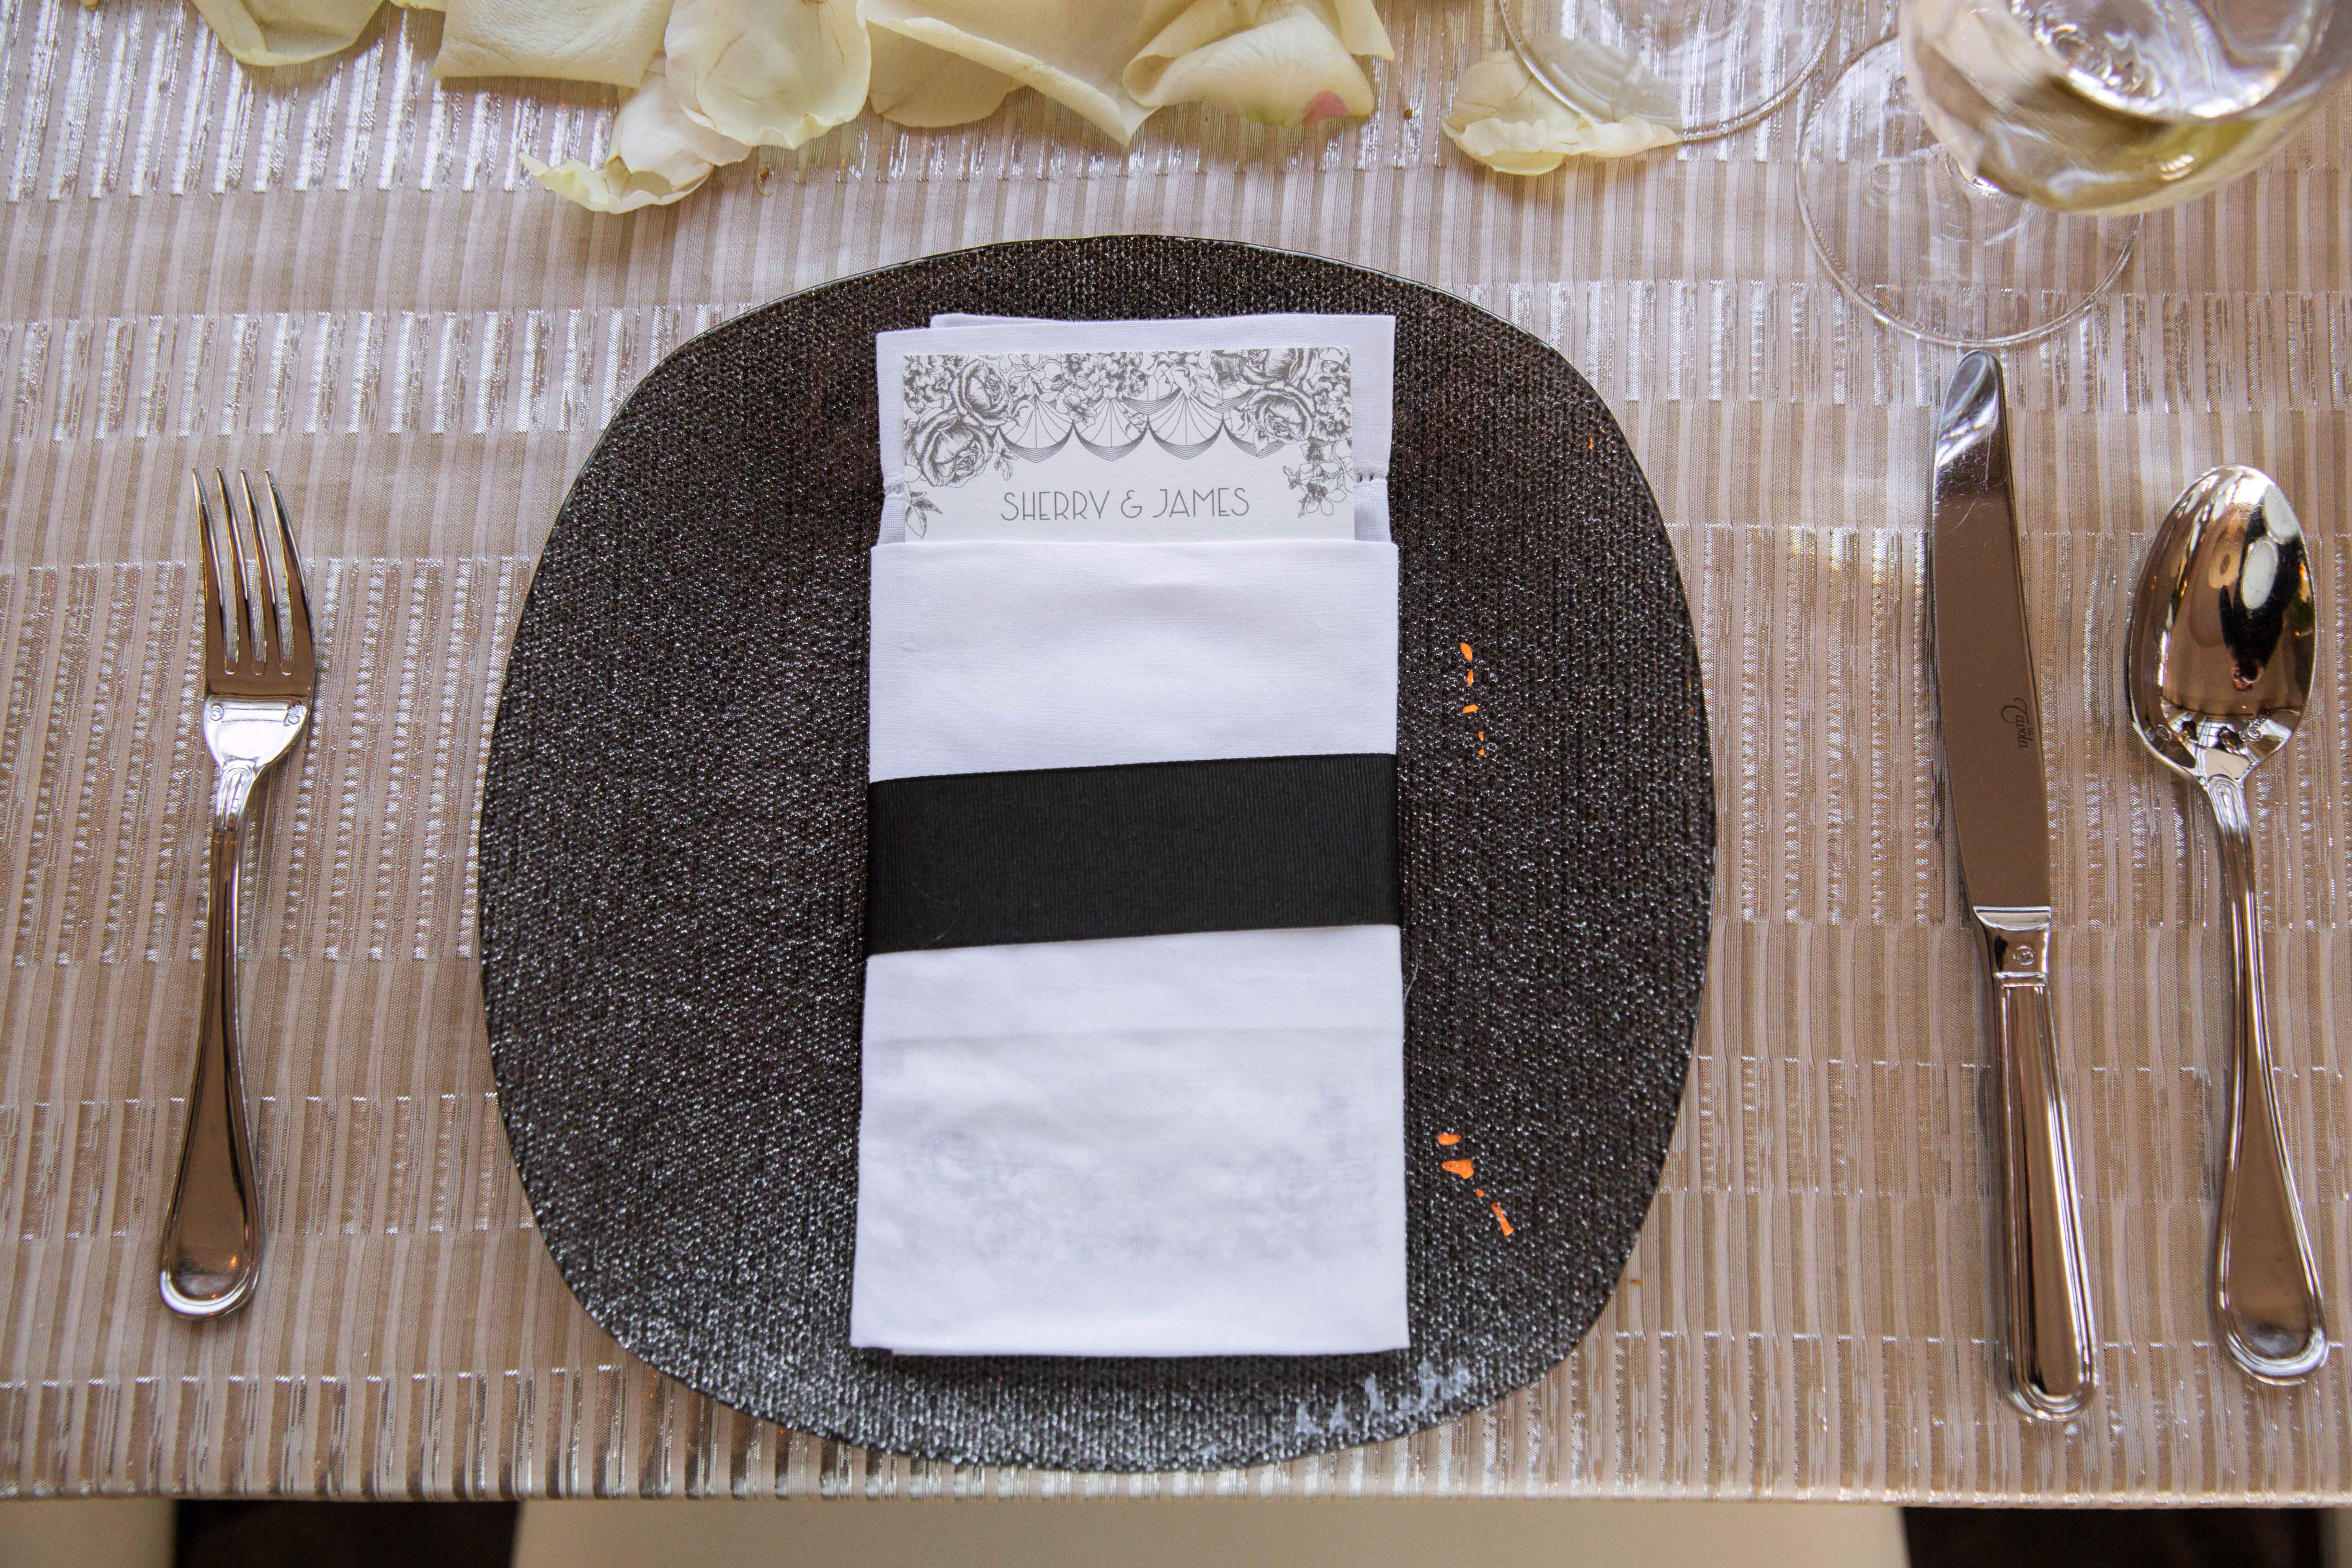 rounded square textured grey charger plate for wedding reception place setting